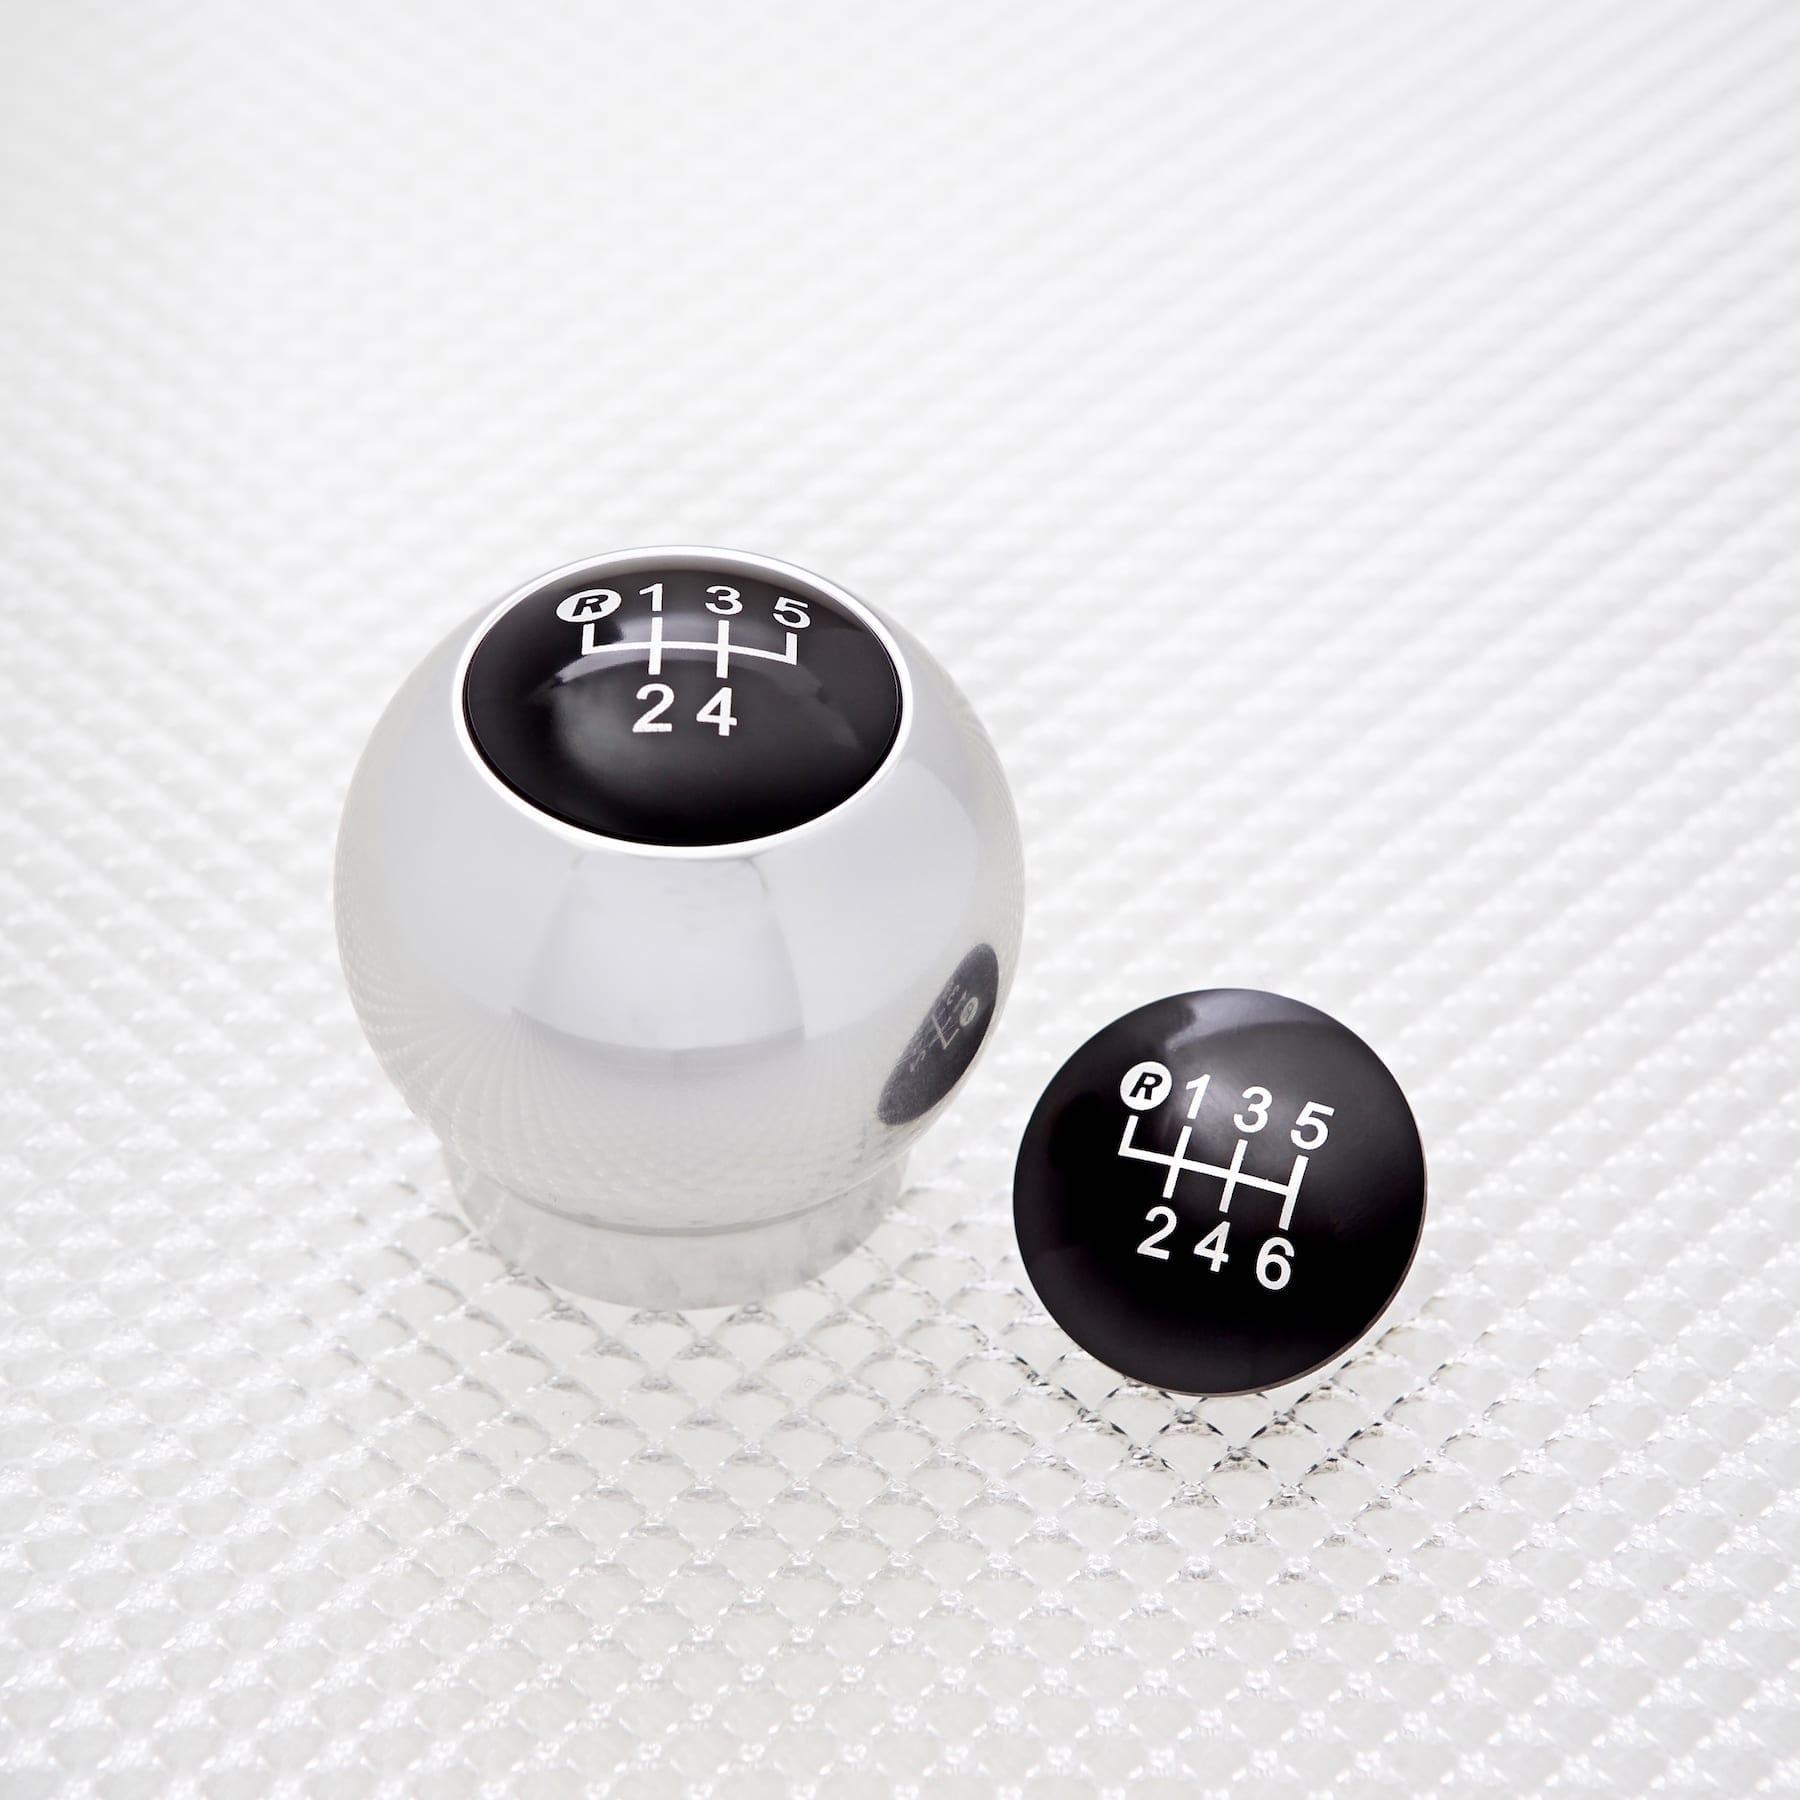 Gear Knob 'Speed Top' - aluminium silver (4 push-inGear pattern top pieces, 5 & 6 speed, reverse top left & bottom right)